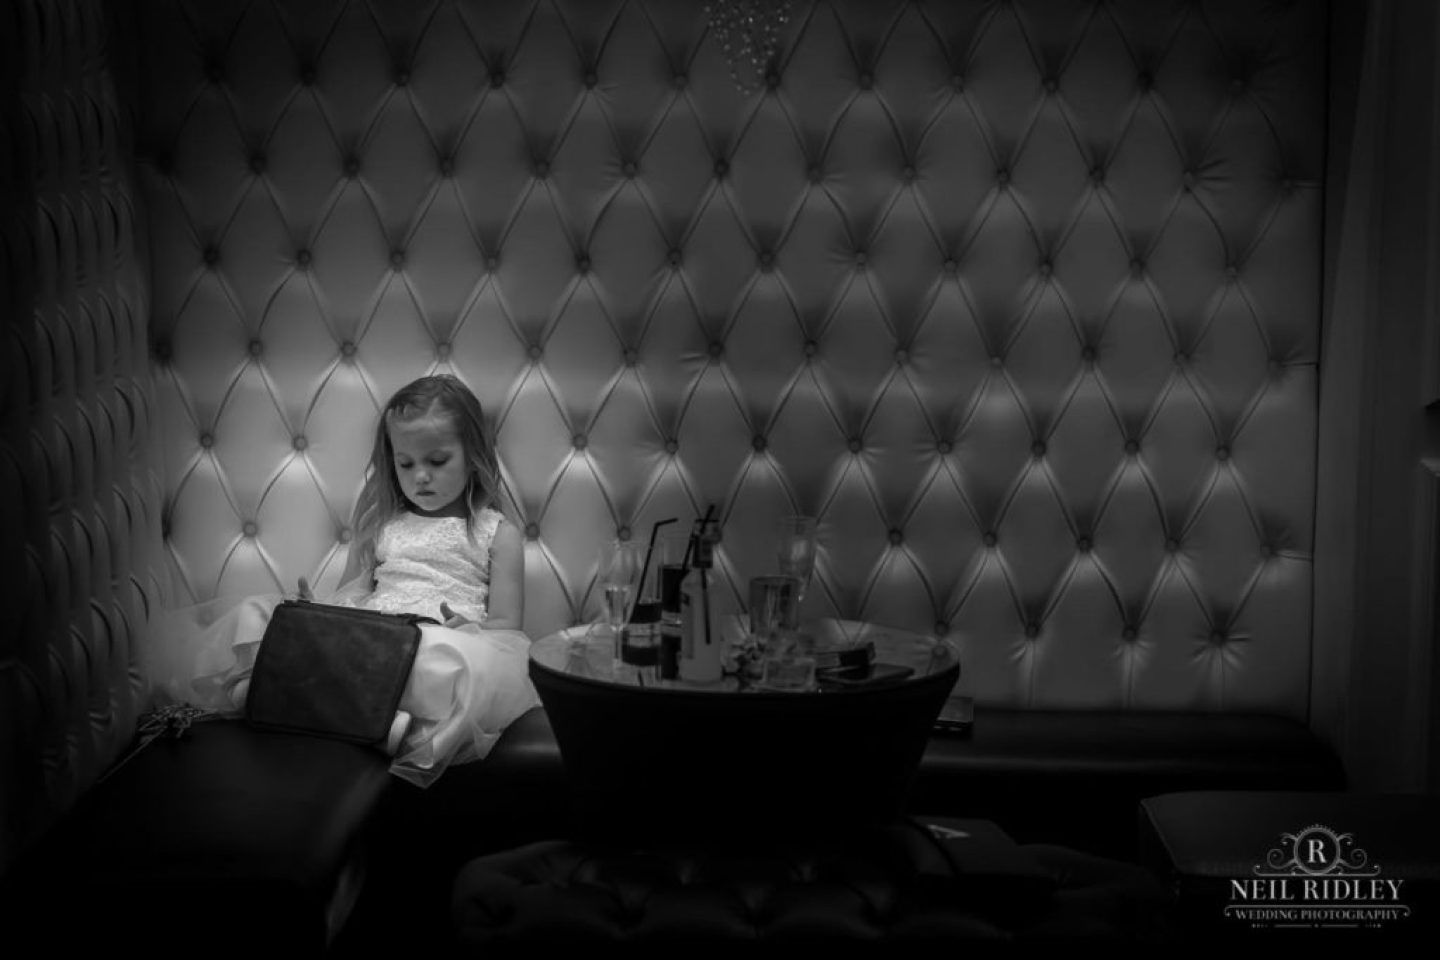 Black and white image of young girl sat in a booth at The Park House Hotel, Blackpool